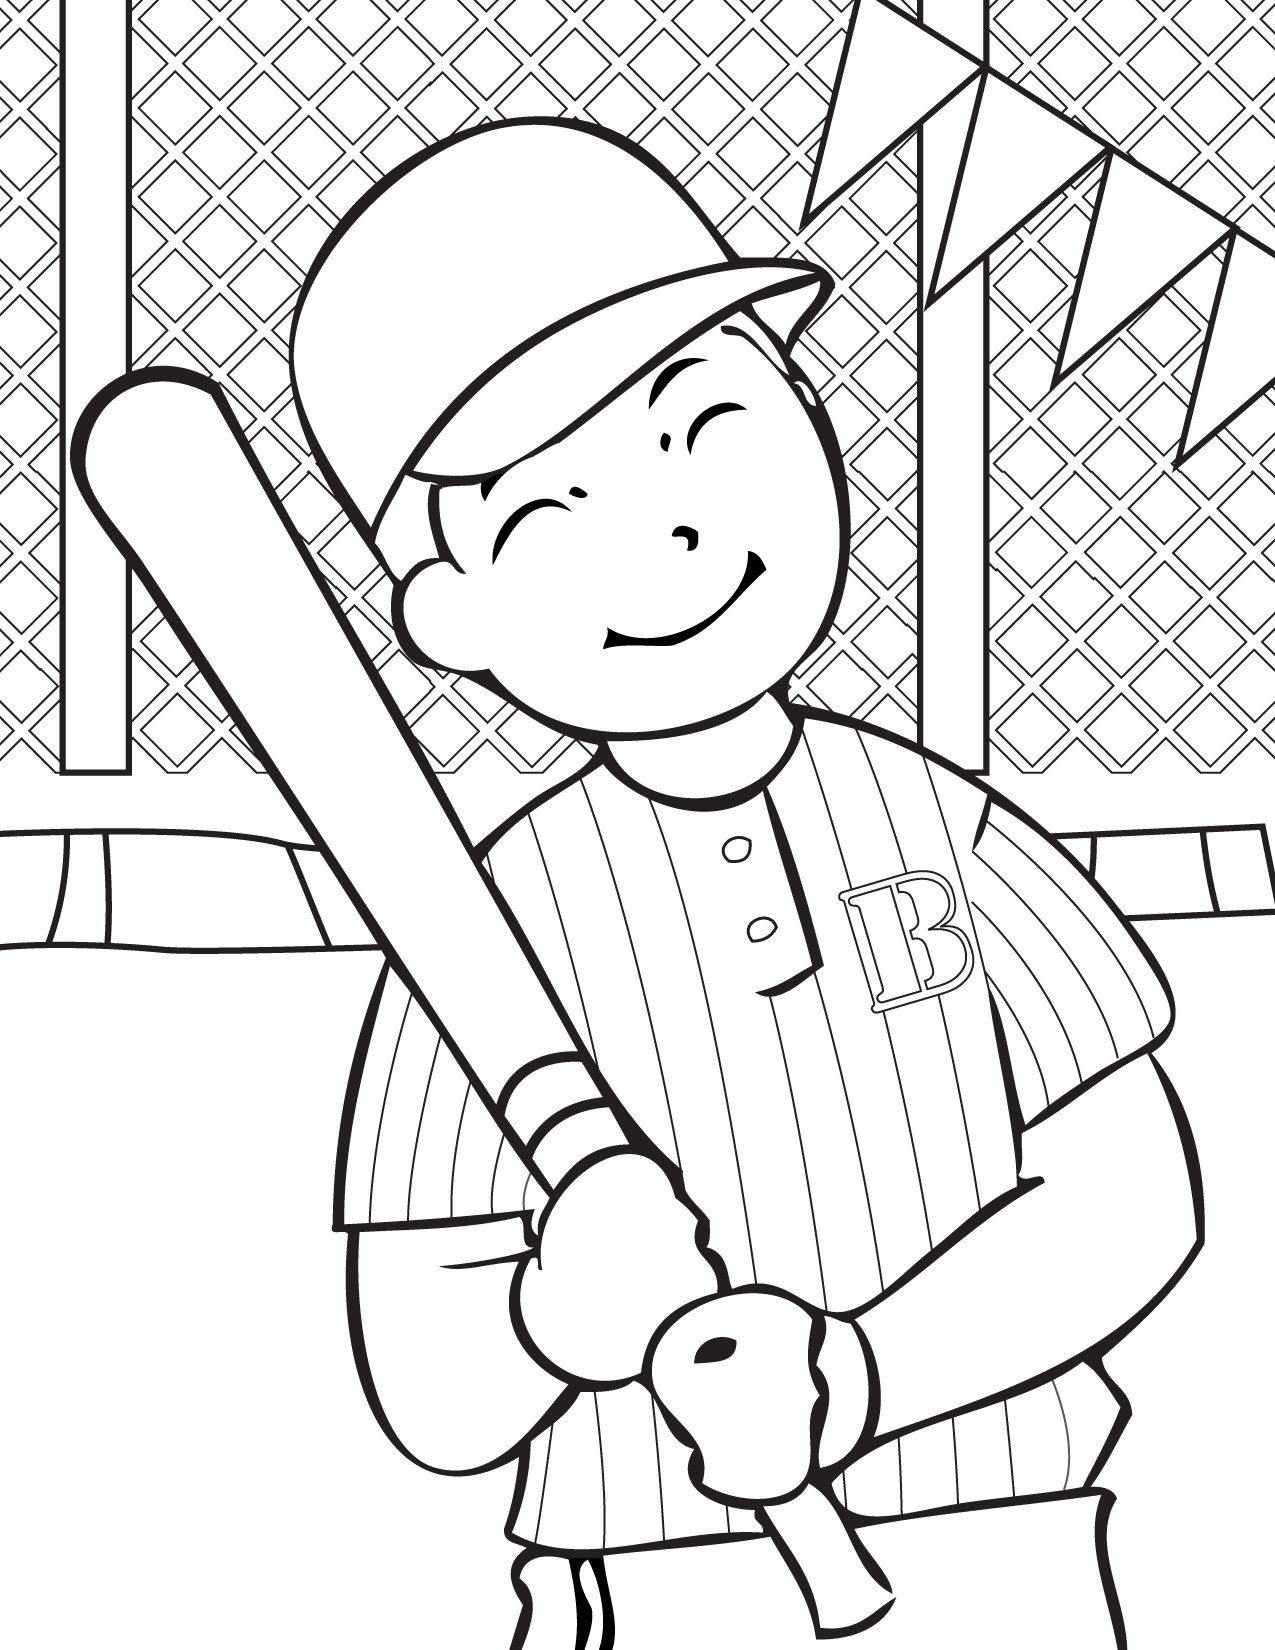 Free Printable Baseball Coloring Pages for Kids - Best ...   free coloring pages for toddlers